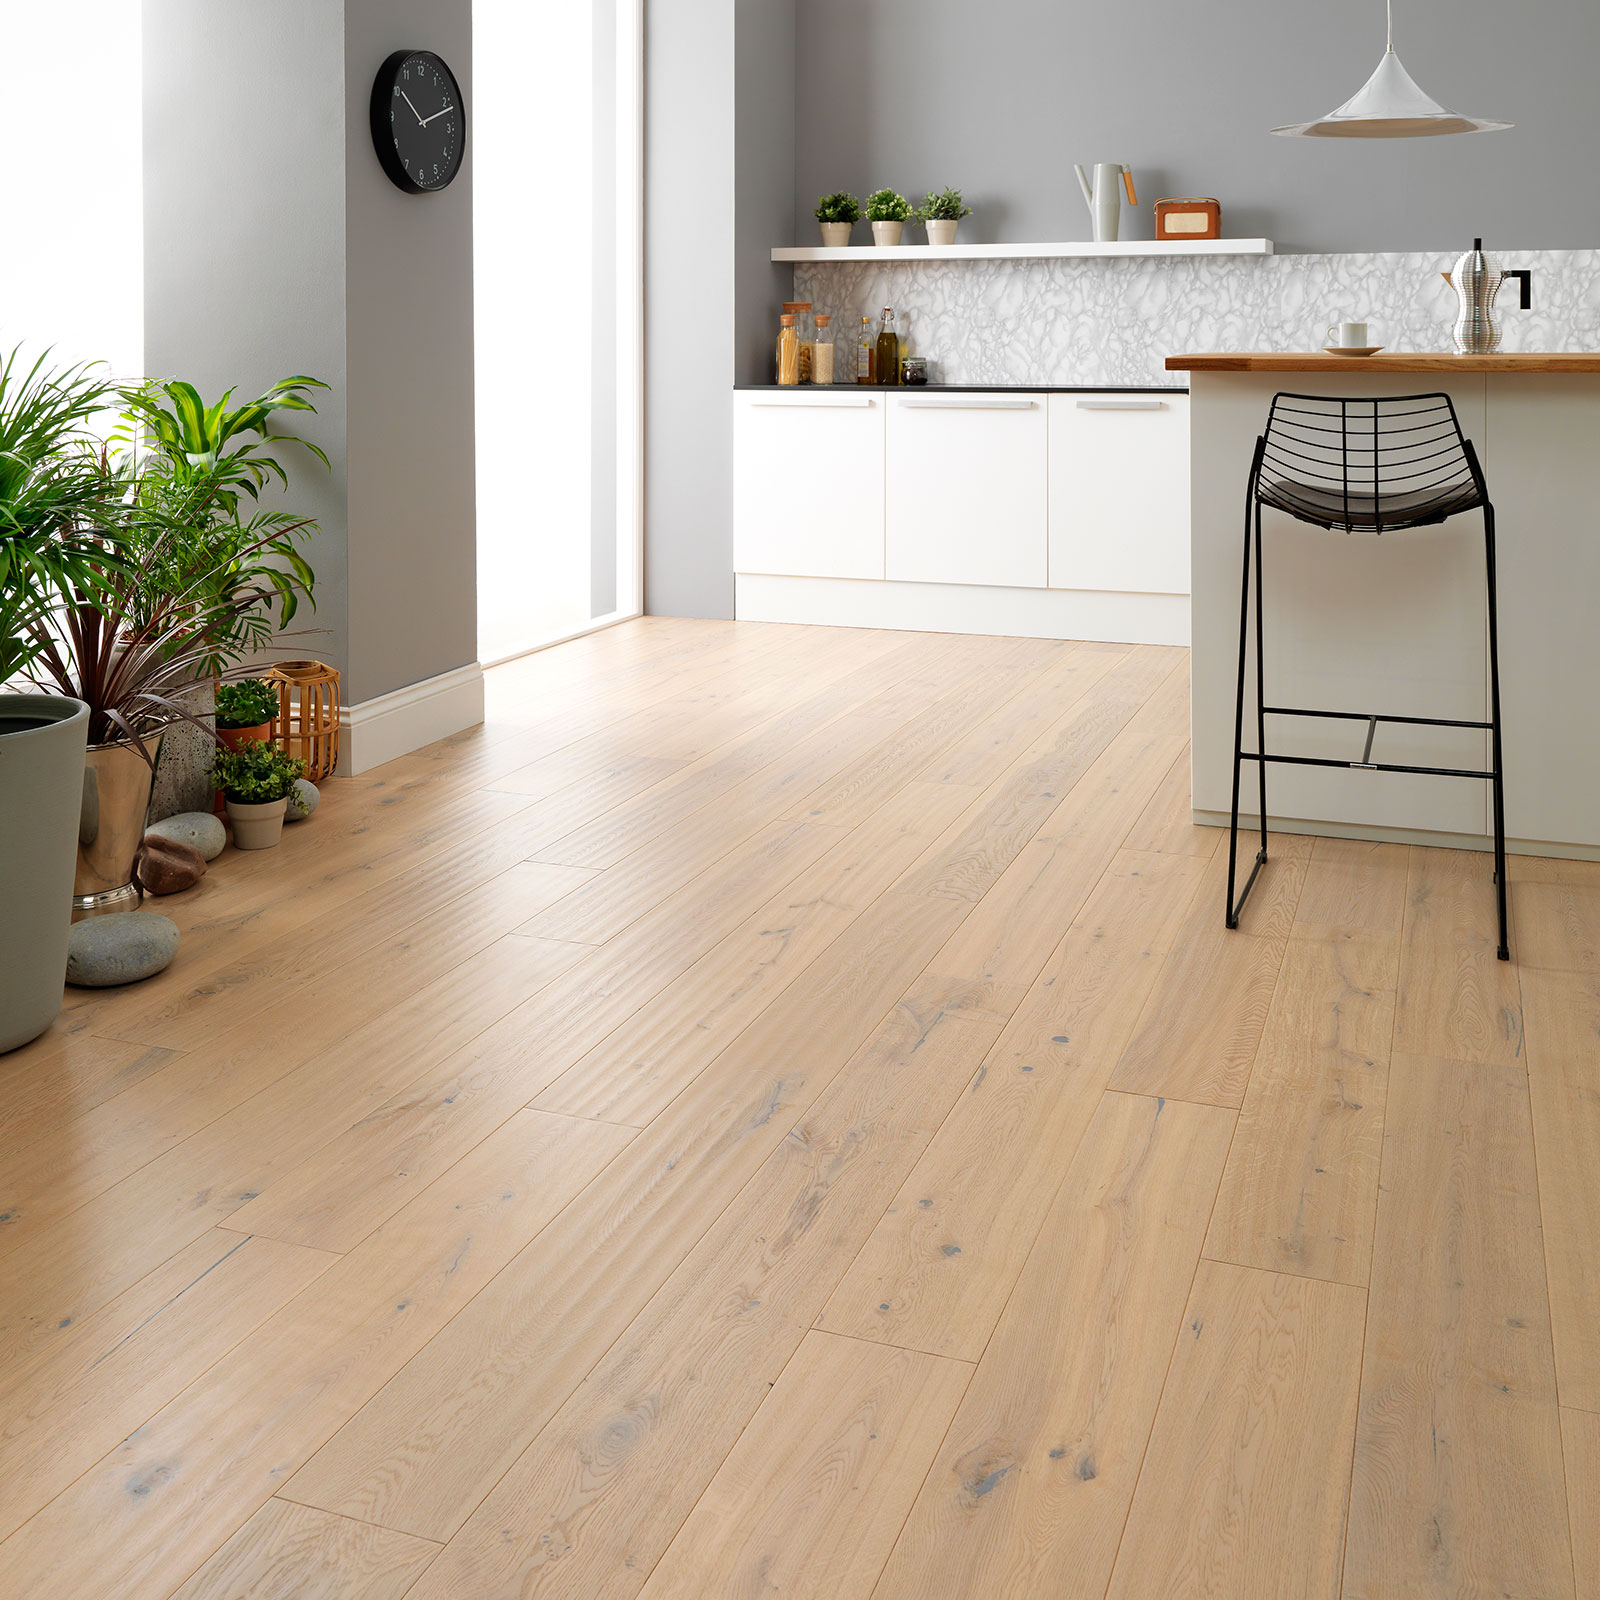 8 Things to Consider when Specifying Kitchen Wood Flooring